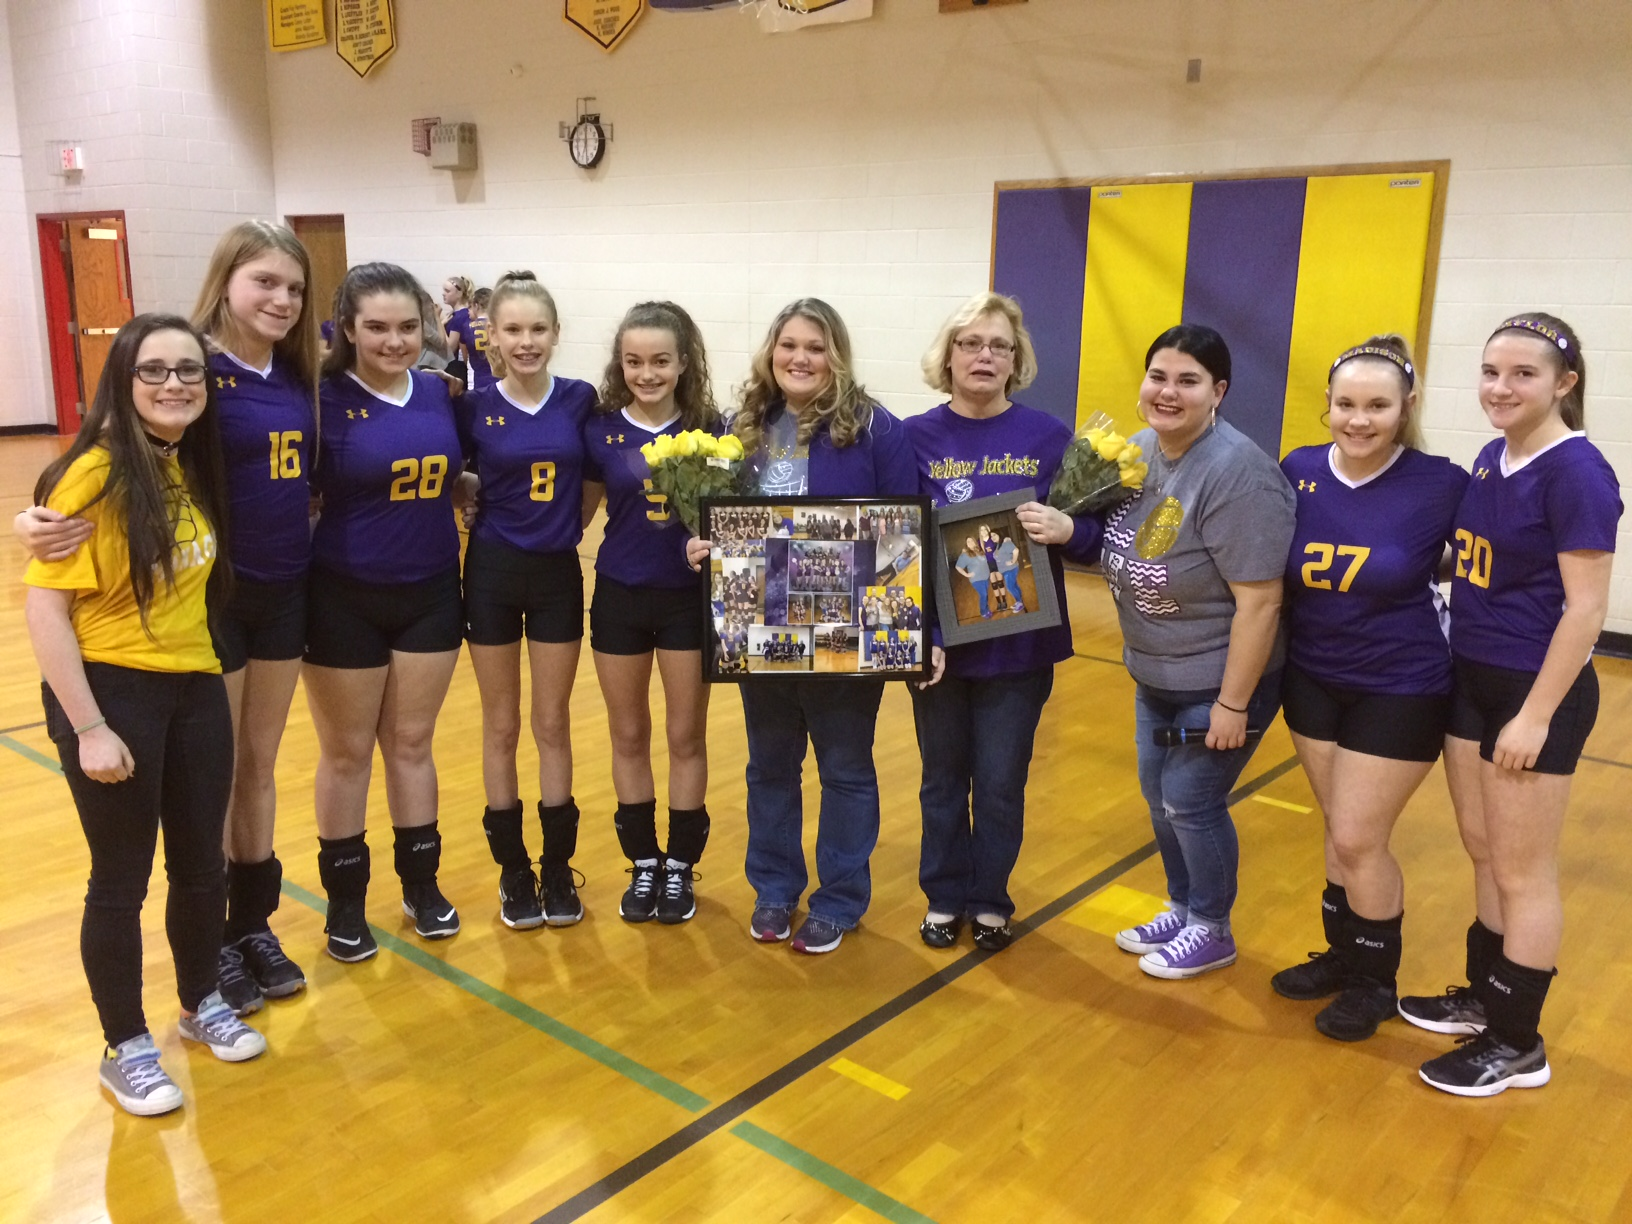 The 8th grade girls recognizing their coaches, Kristi Isaac and Patti Thompson